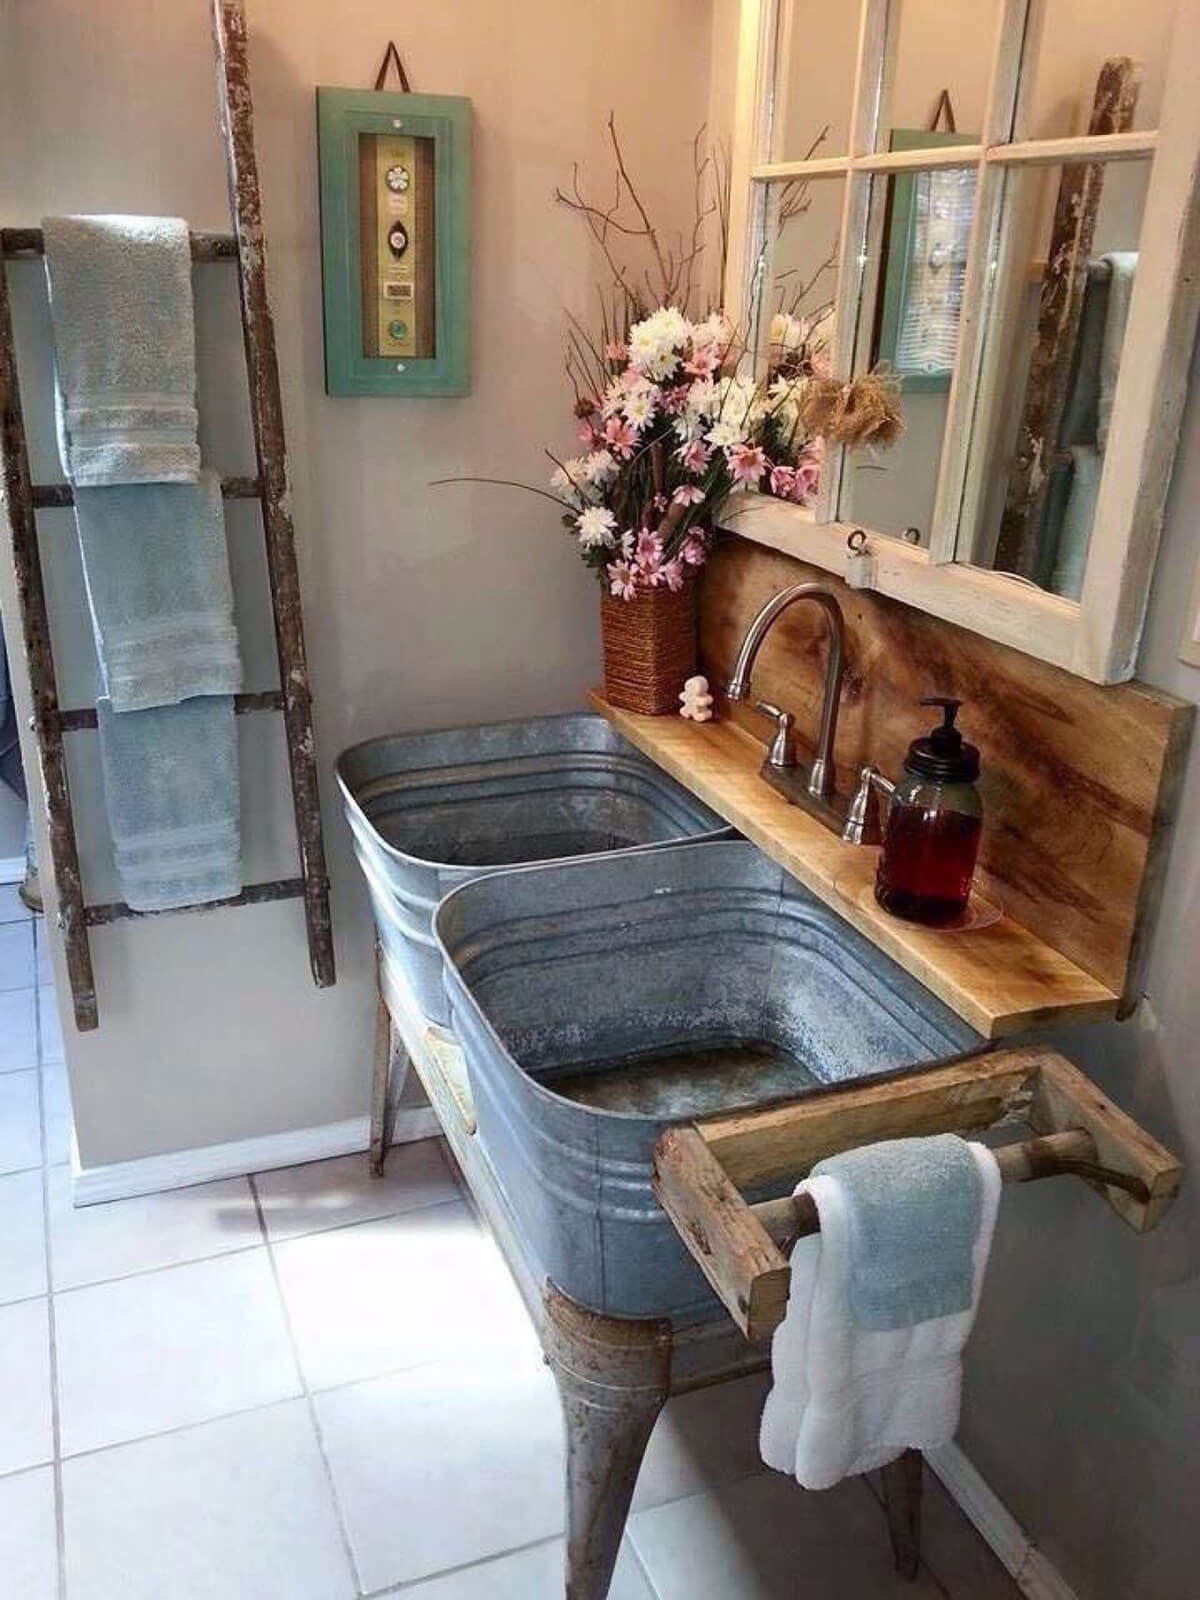 Galvanized Tubs Turned Bathroom Sinks